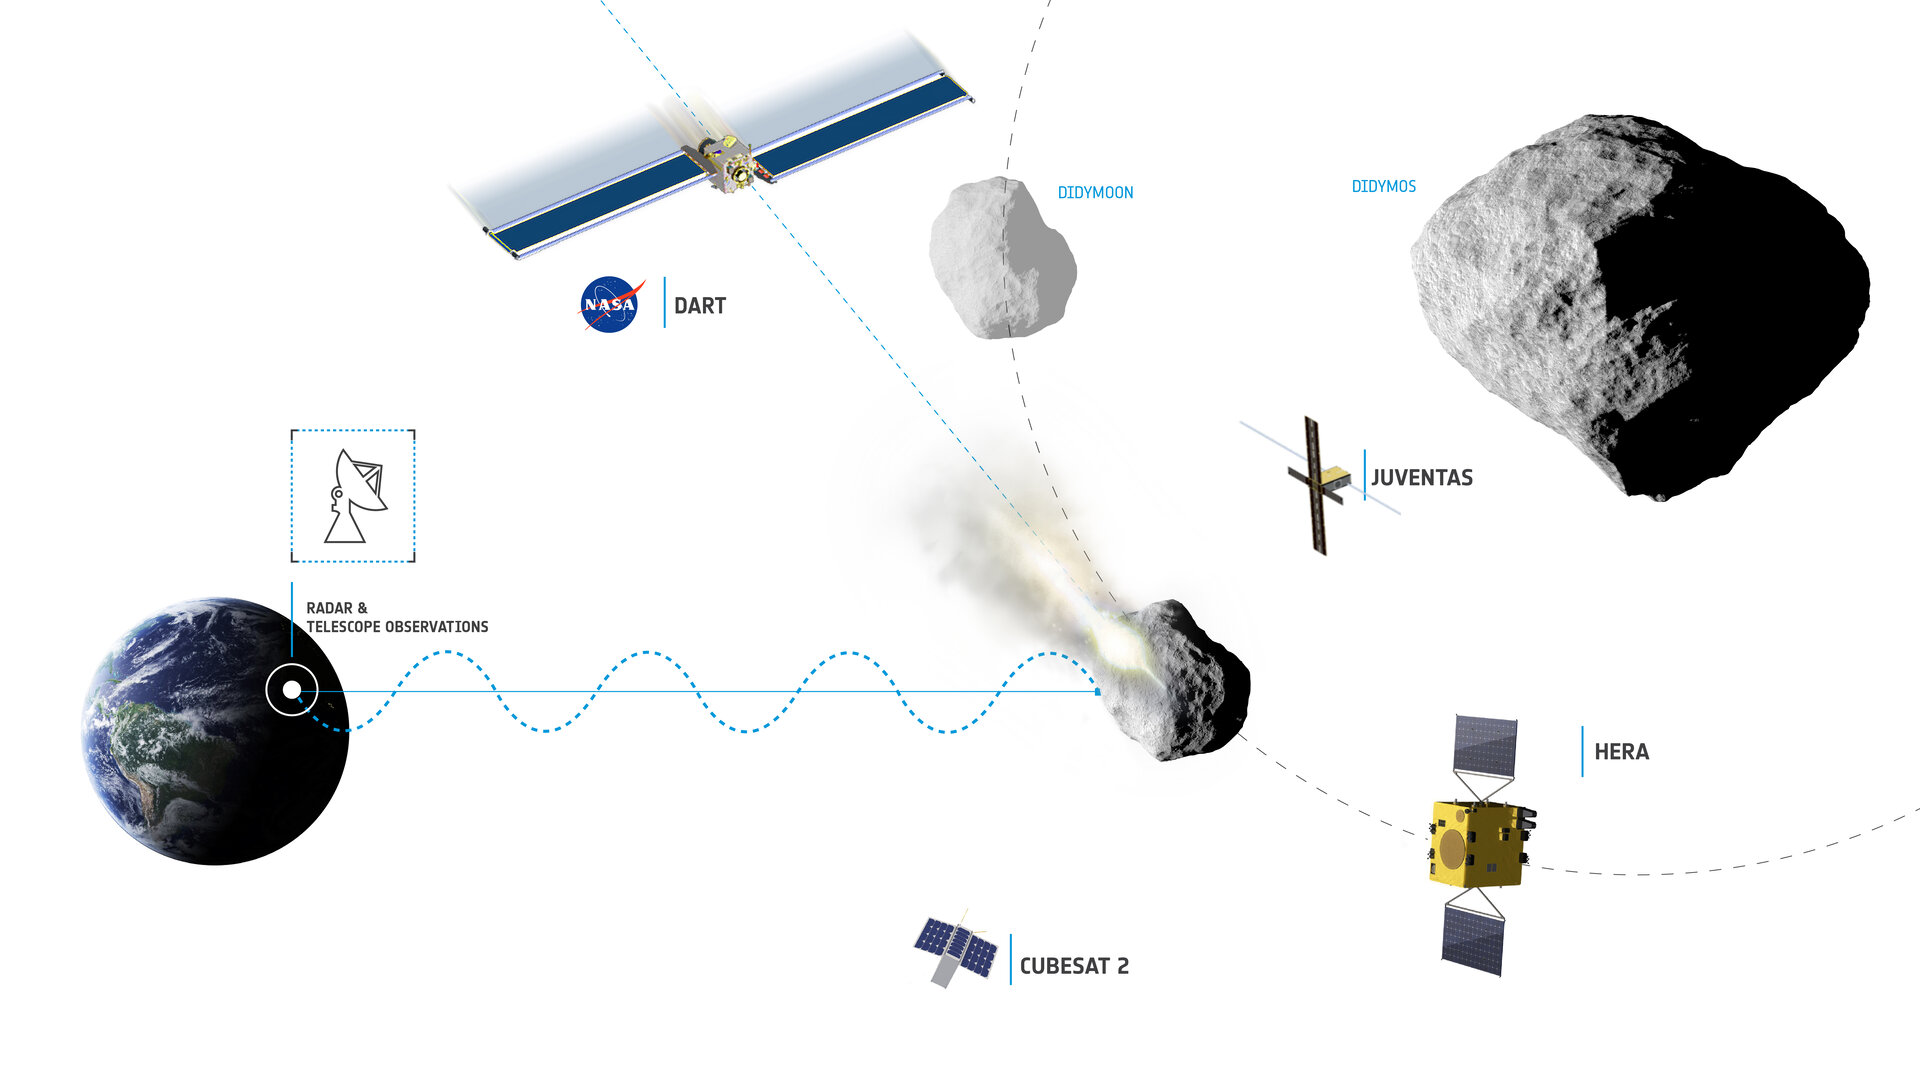 Asteroid Impact & Deflection Assessment (AIDA) collaboration